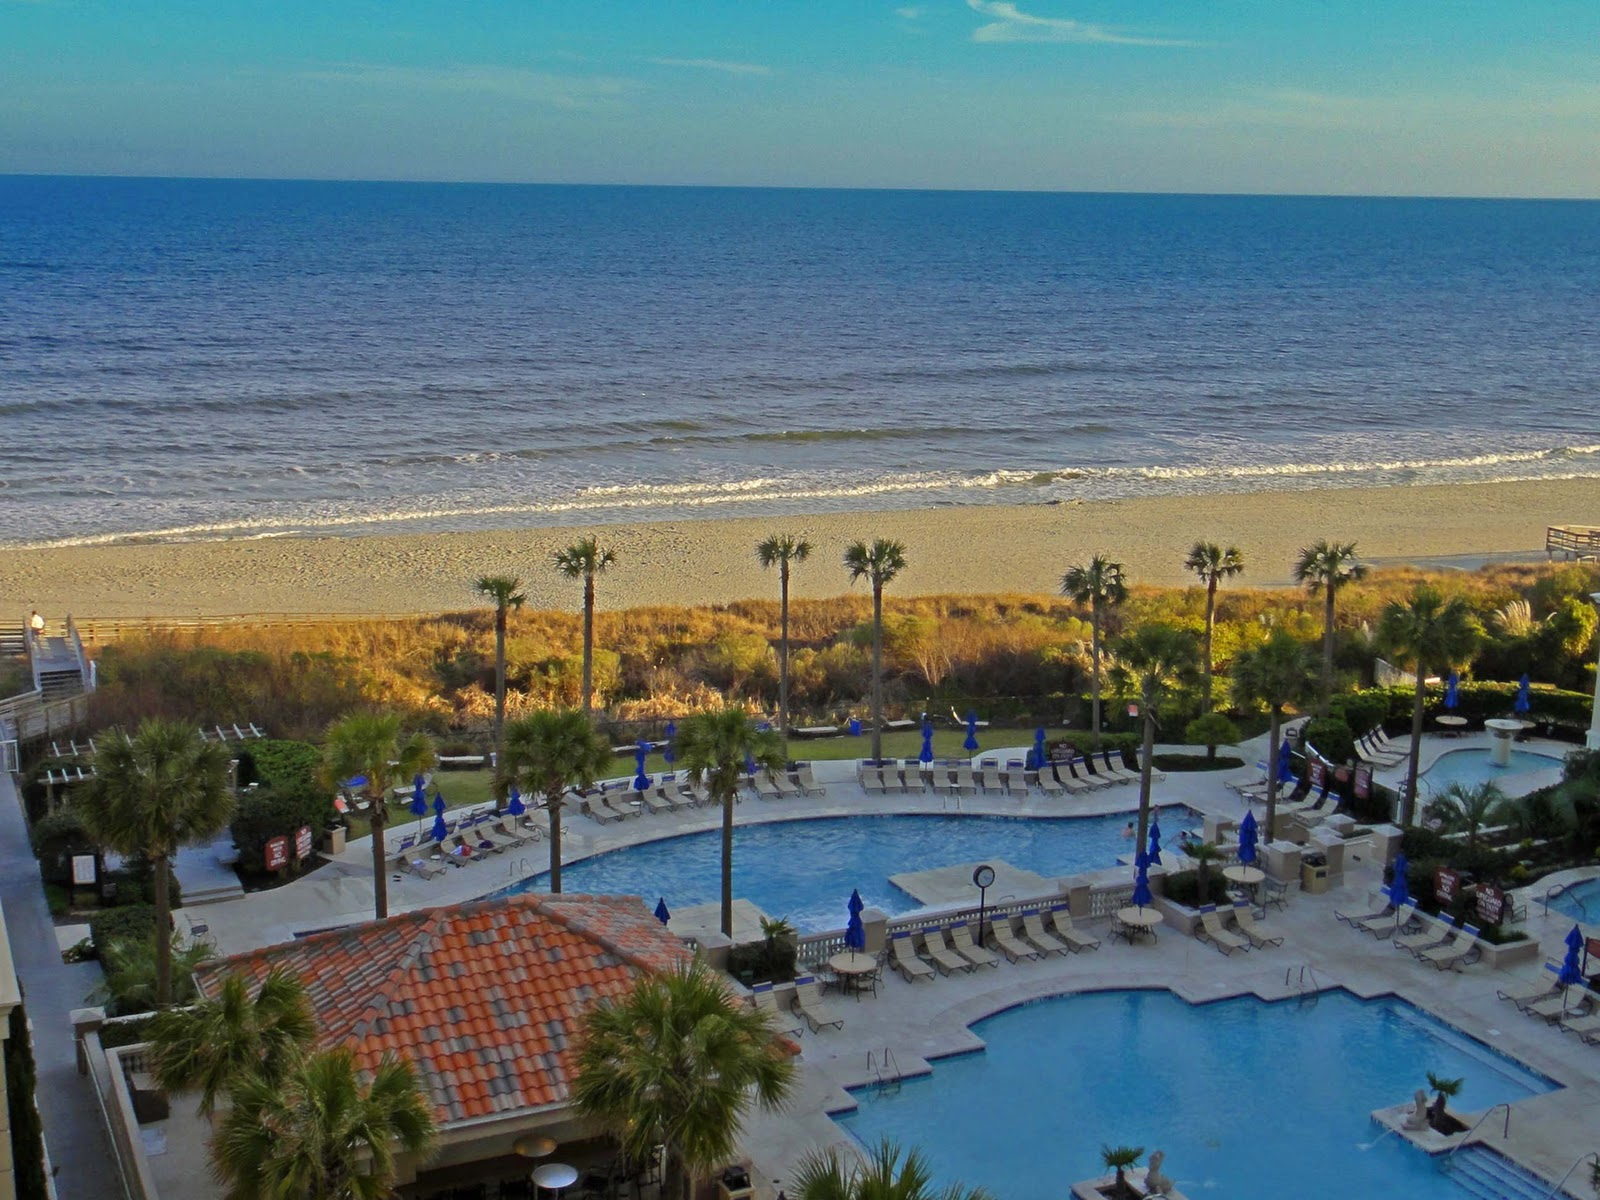 Joe's Retirement Blog: Myrtle Beach, South Carolina, USA